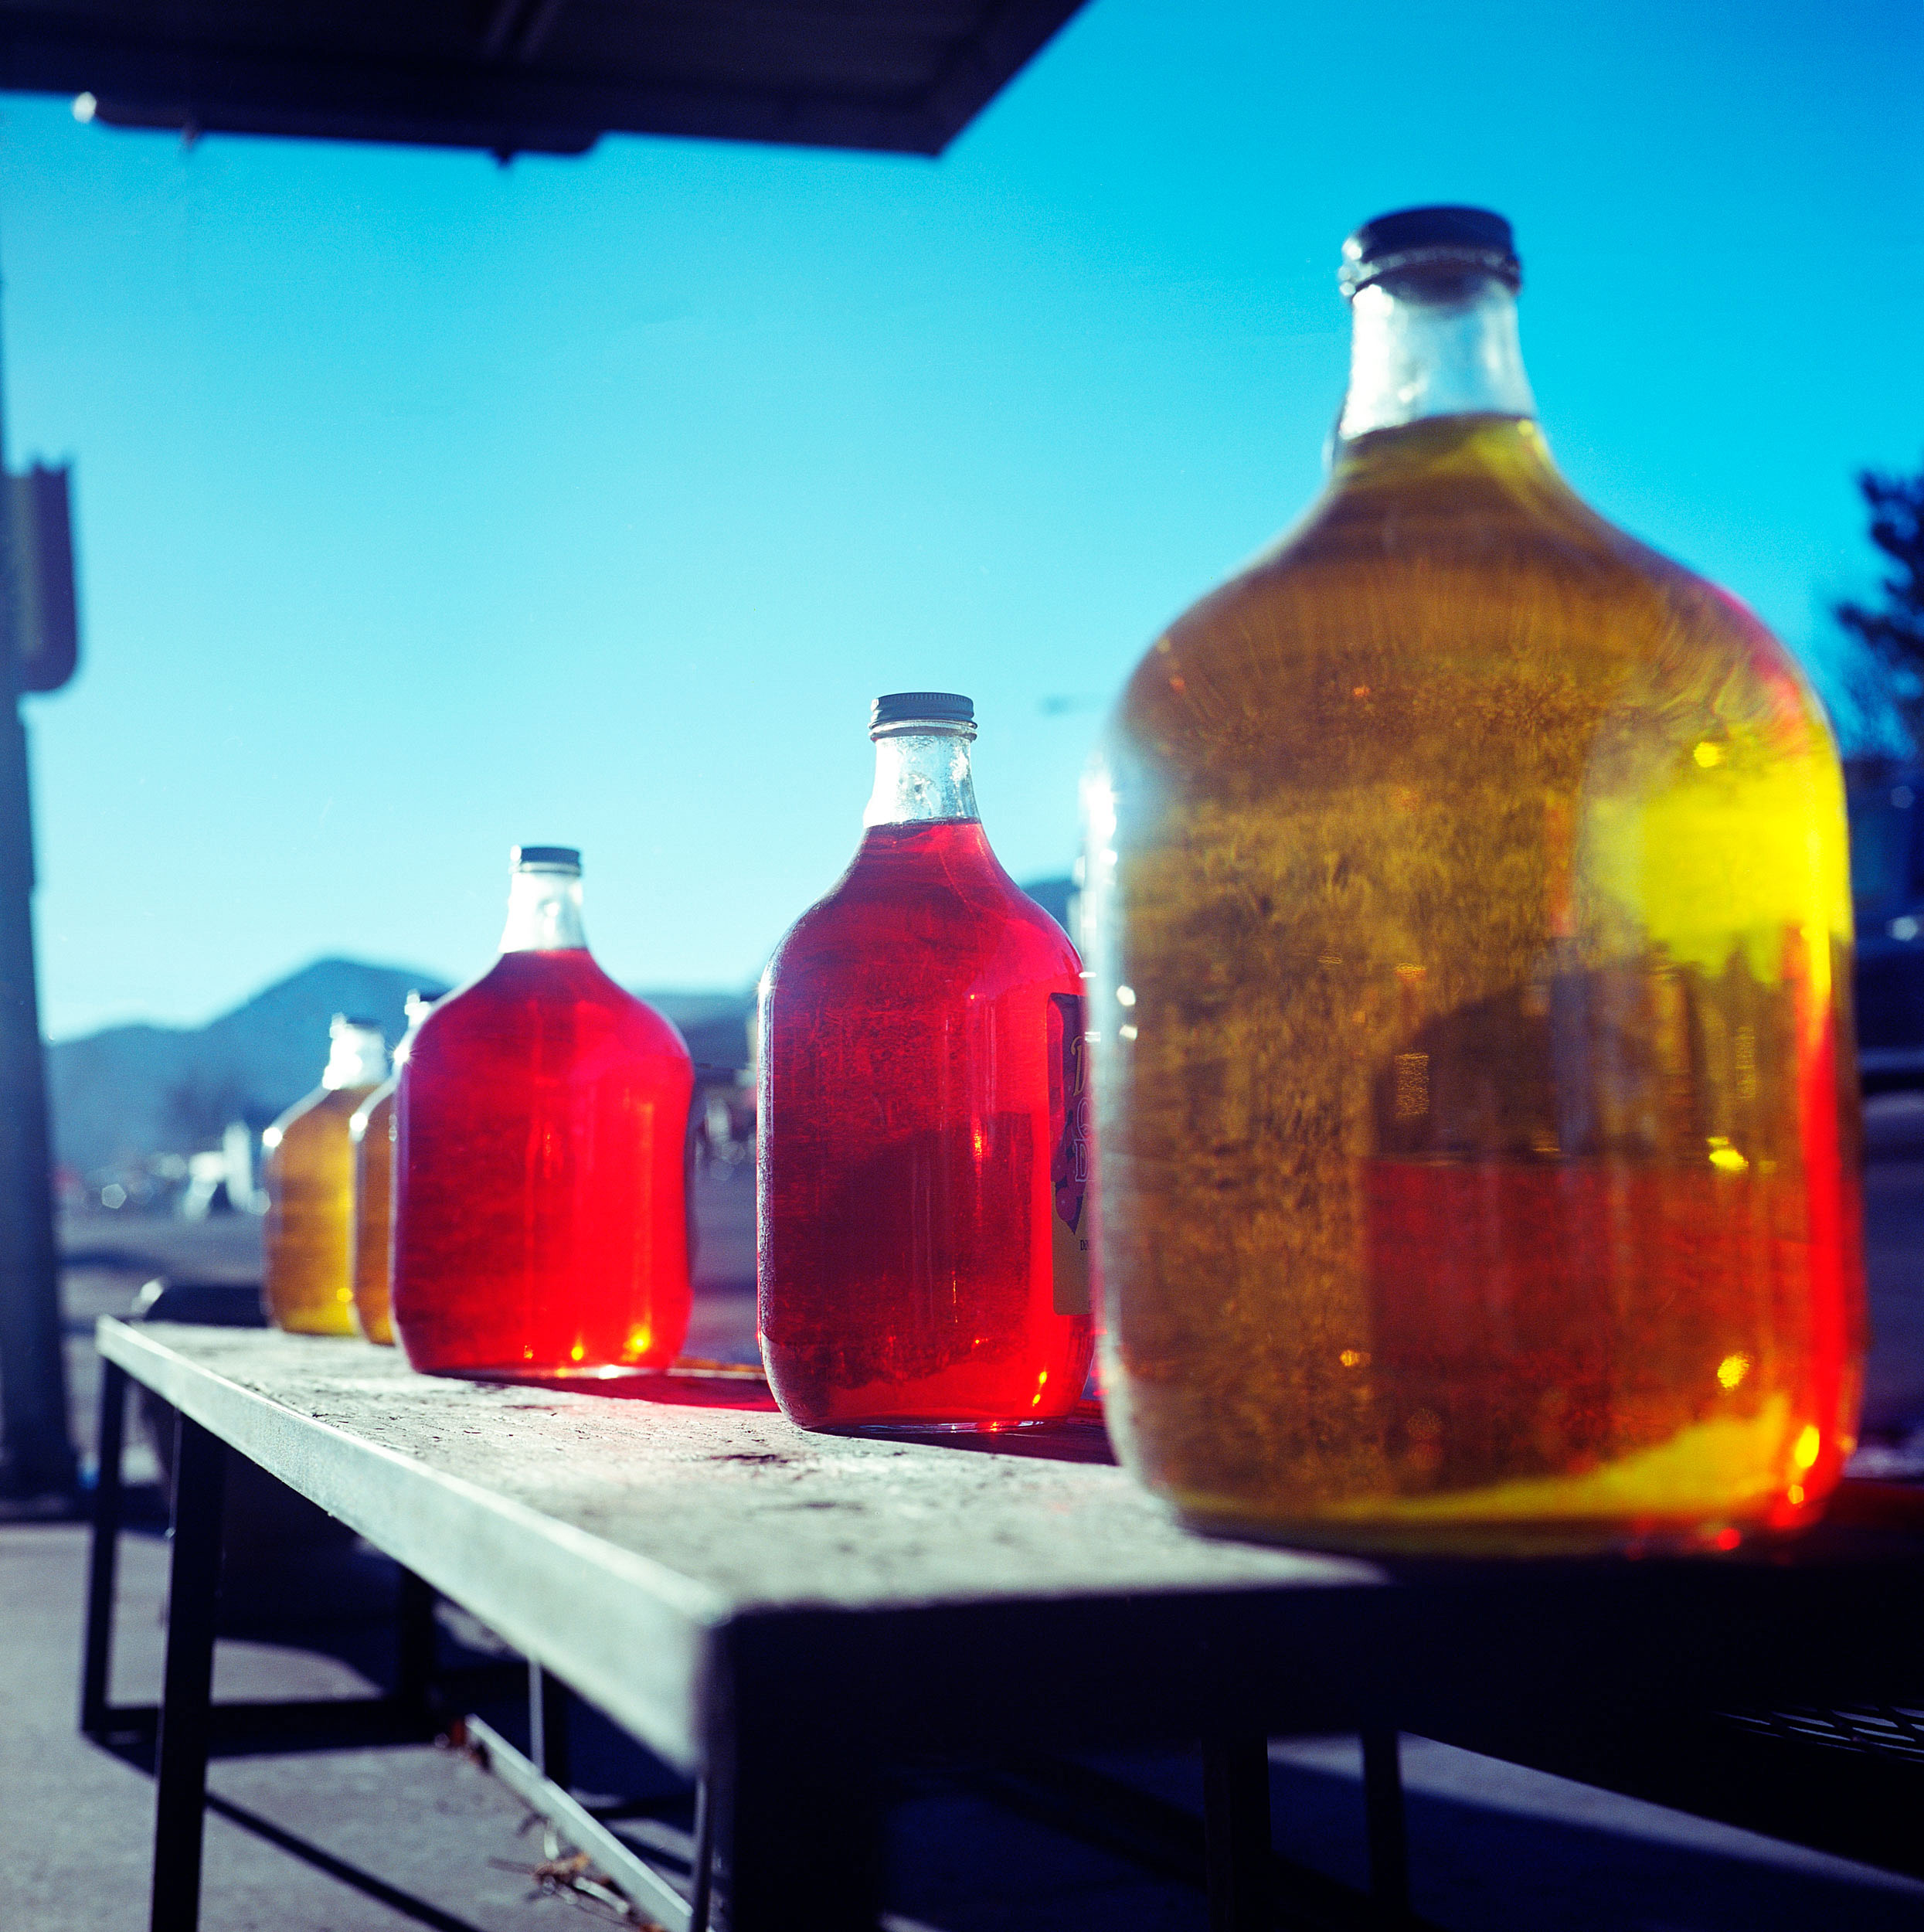 Cañon City, Colorado. These colorful cider bottles with the sun streaking through them caught my eye, but not just because of the color, but because they were very dusty. It boggled my mind that someone would put these bottles out for display to entice shoppers to stop inside their store wouldn't clean their product of dust I could see from a moving car passing by on the street. I stopped and grabbed a few shots of totally meaningless eye candy, and then noticed an old Chevy around the corner in the parking lot. I made a few shots when an older woman with a heavy Germanic accent aggressively confronted me to ask what I was doing. I told her I was taking a picture of the car and she replied that there had been a lot of vandalism lately. Mind you, this was in the middle of the day along a major artery of Cañon City, in a parking lot that was empty save for the Chevy. All in all, not a great first impression for Cañon City. I cut off her rant by apologizing for disturbing her and walked back to my car. It's too bad because in hindsight, I would have loved to make her portrait and buy some cider.